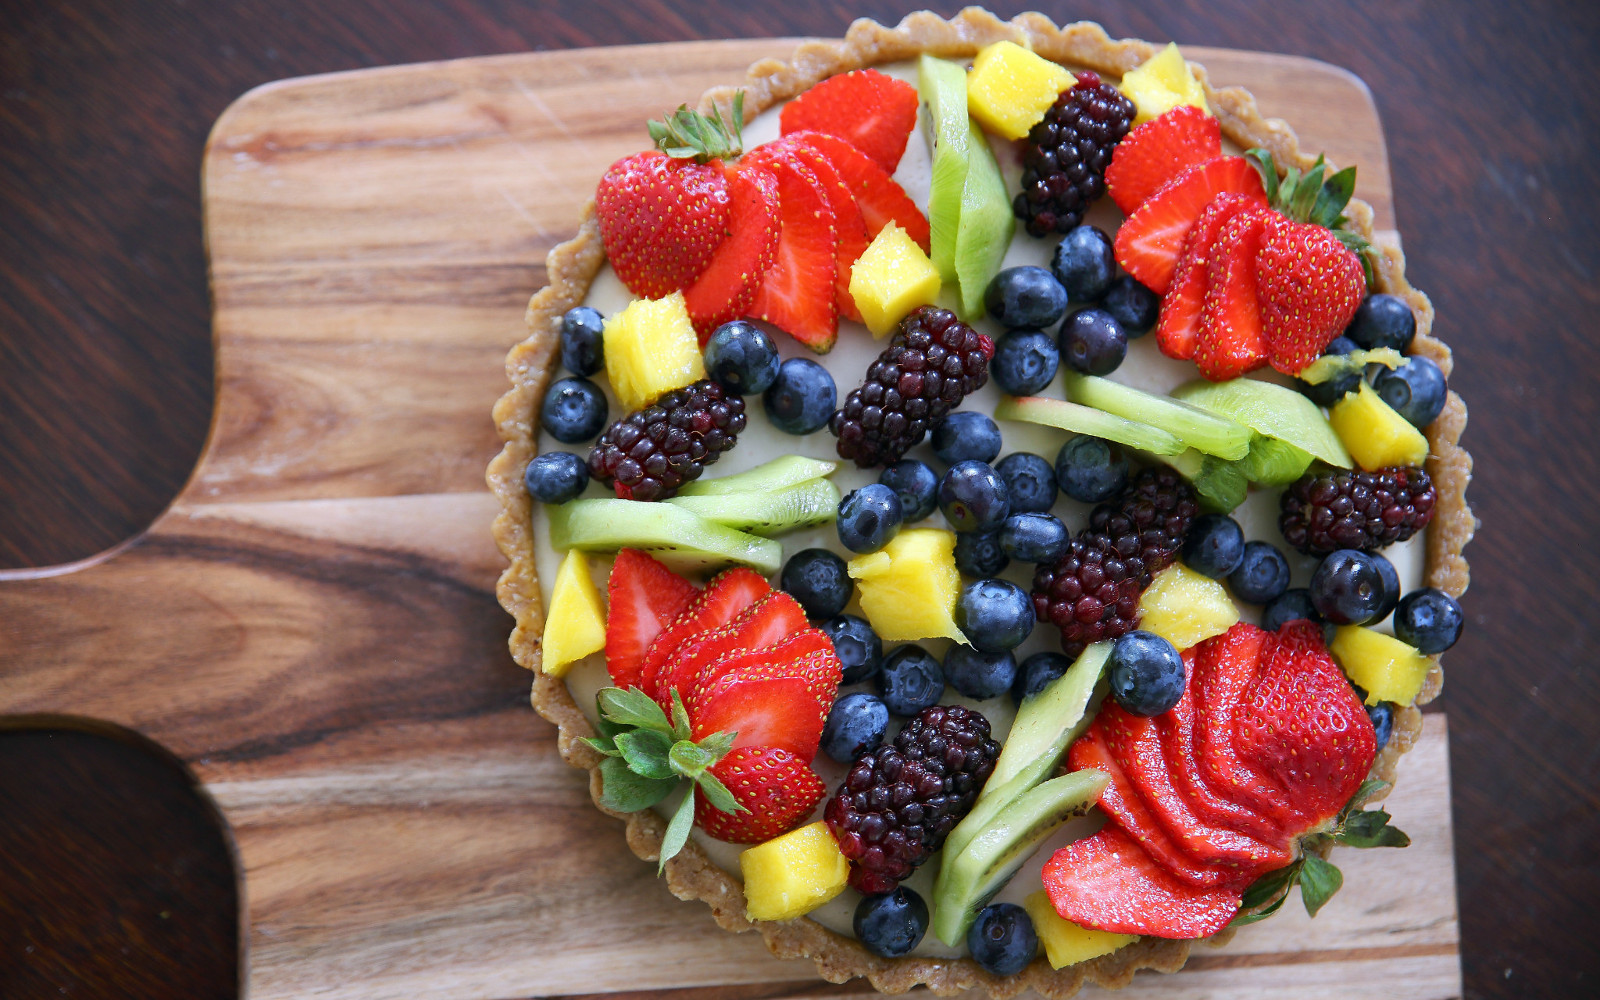 Summer Fruit Tart With a Creamy Cashew Filling